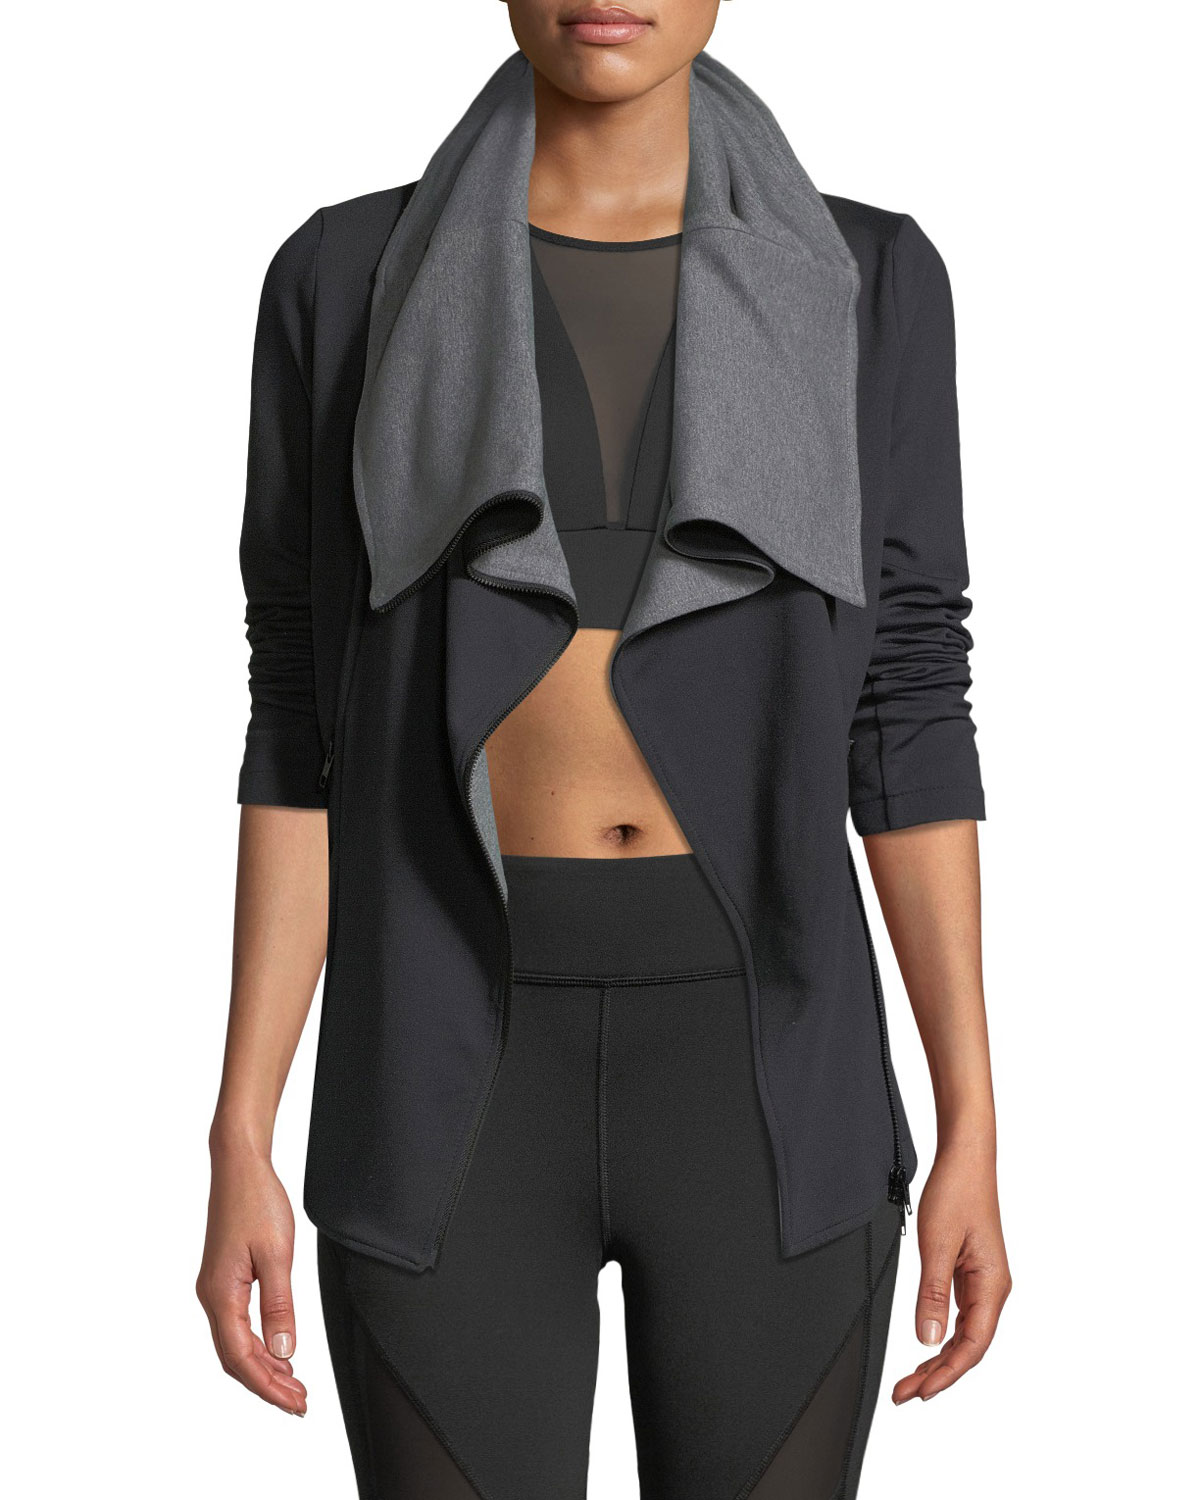 MICHI Lotus Zip-Front Active Jacket in Black/Gray